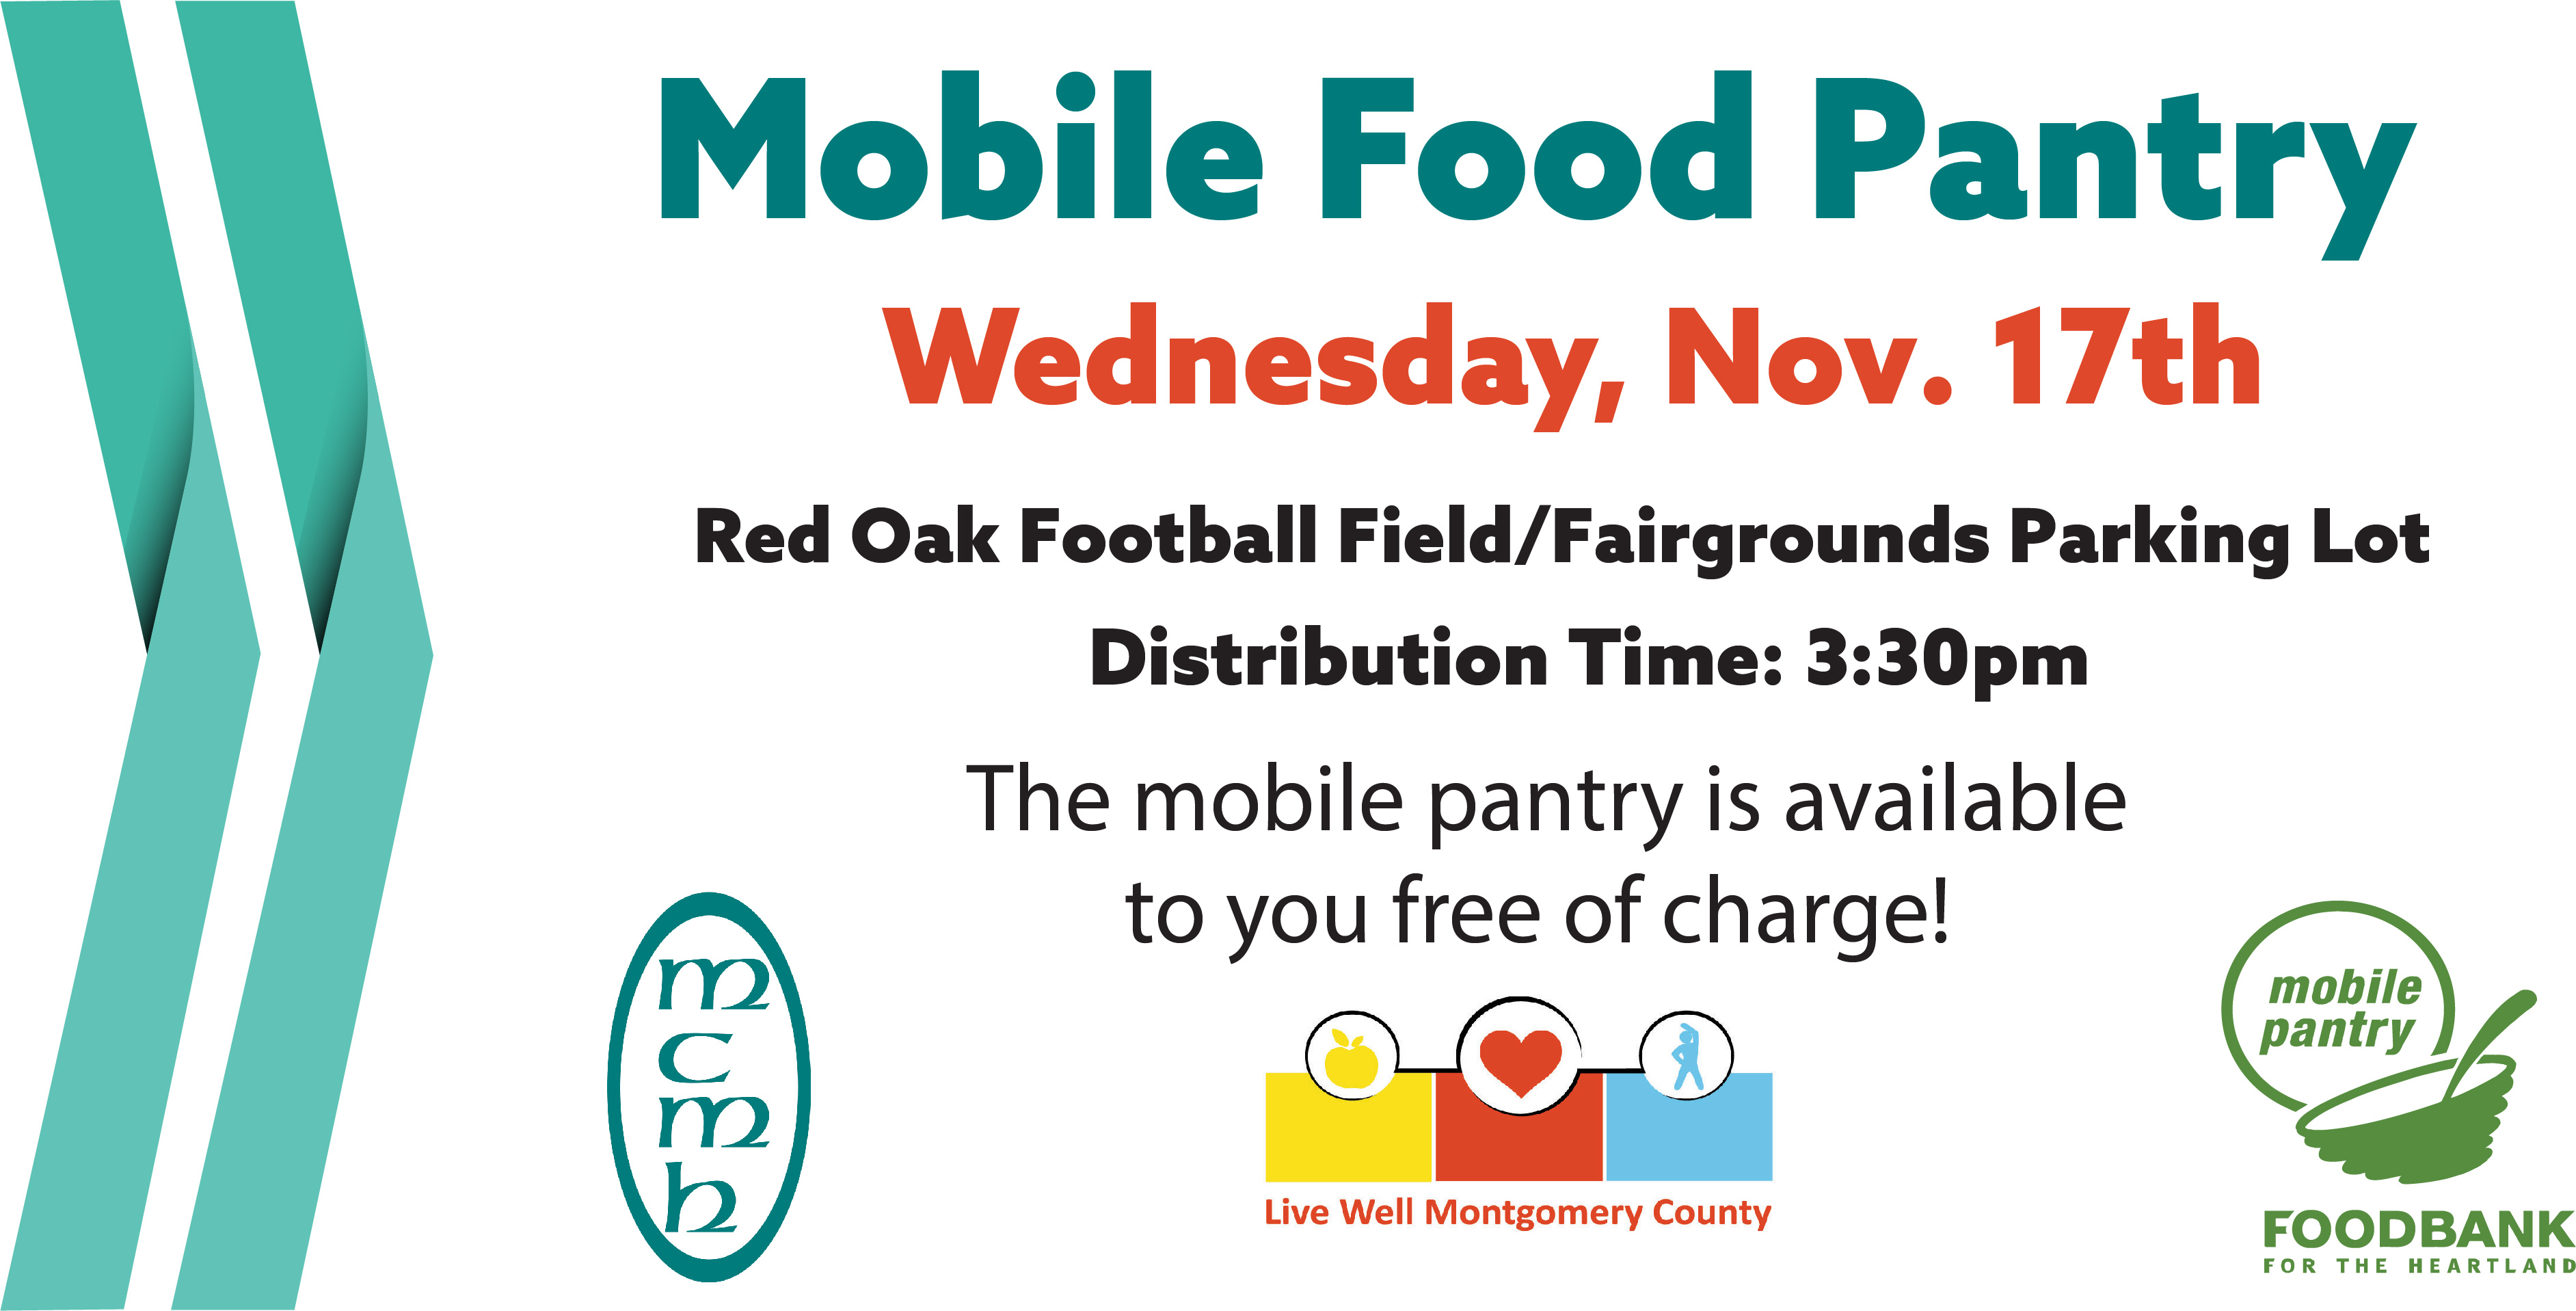 Mobile Food Pantry - September 29th.